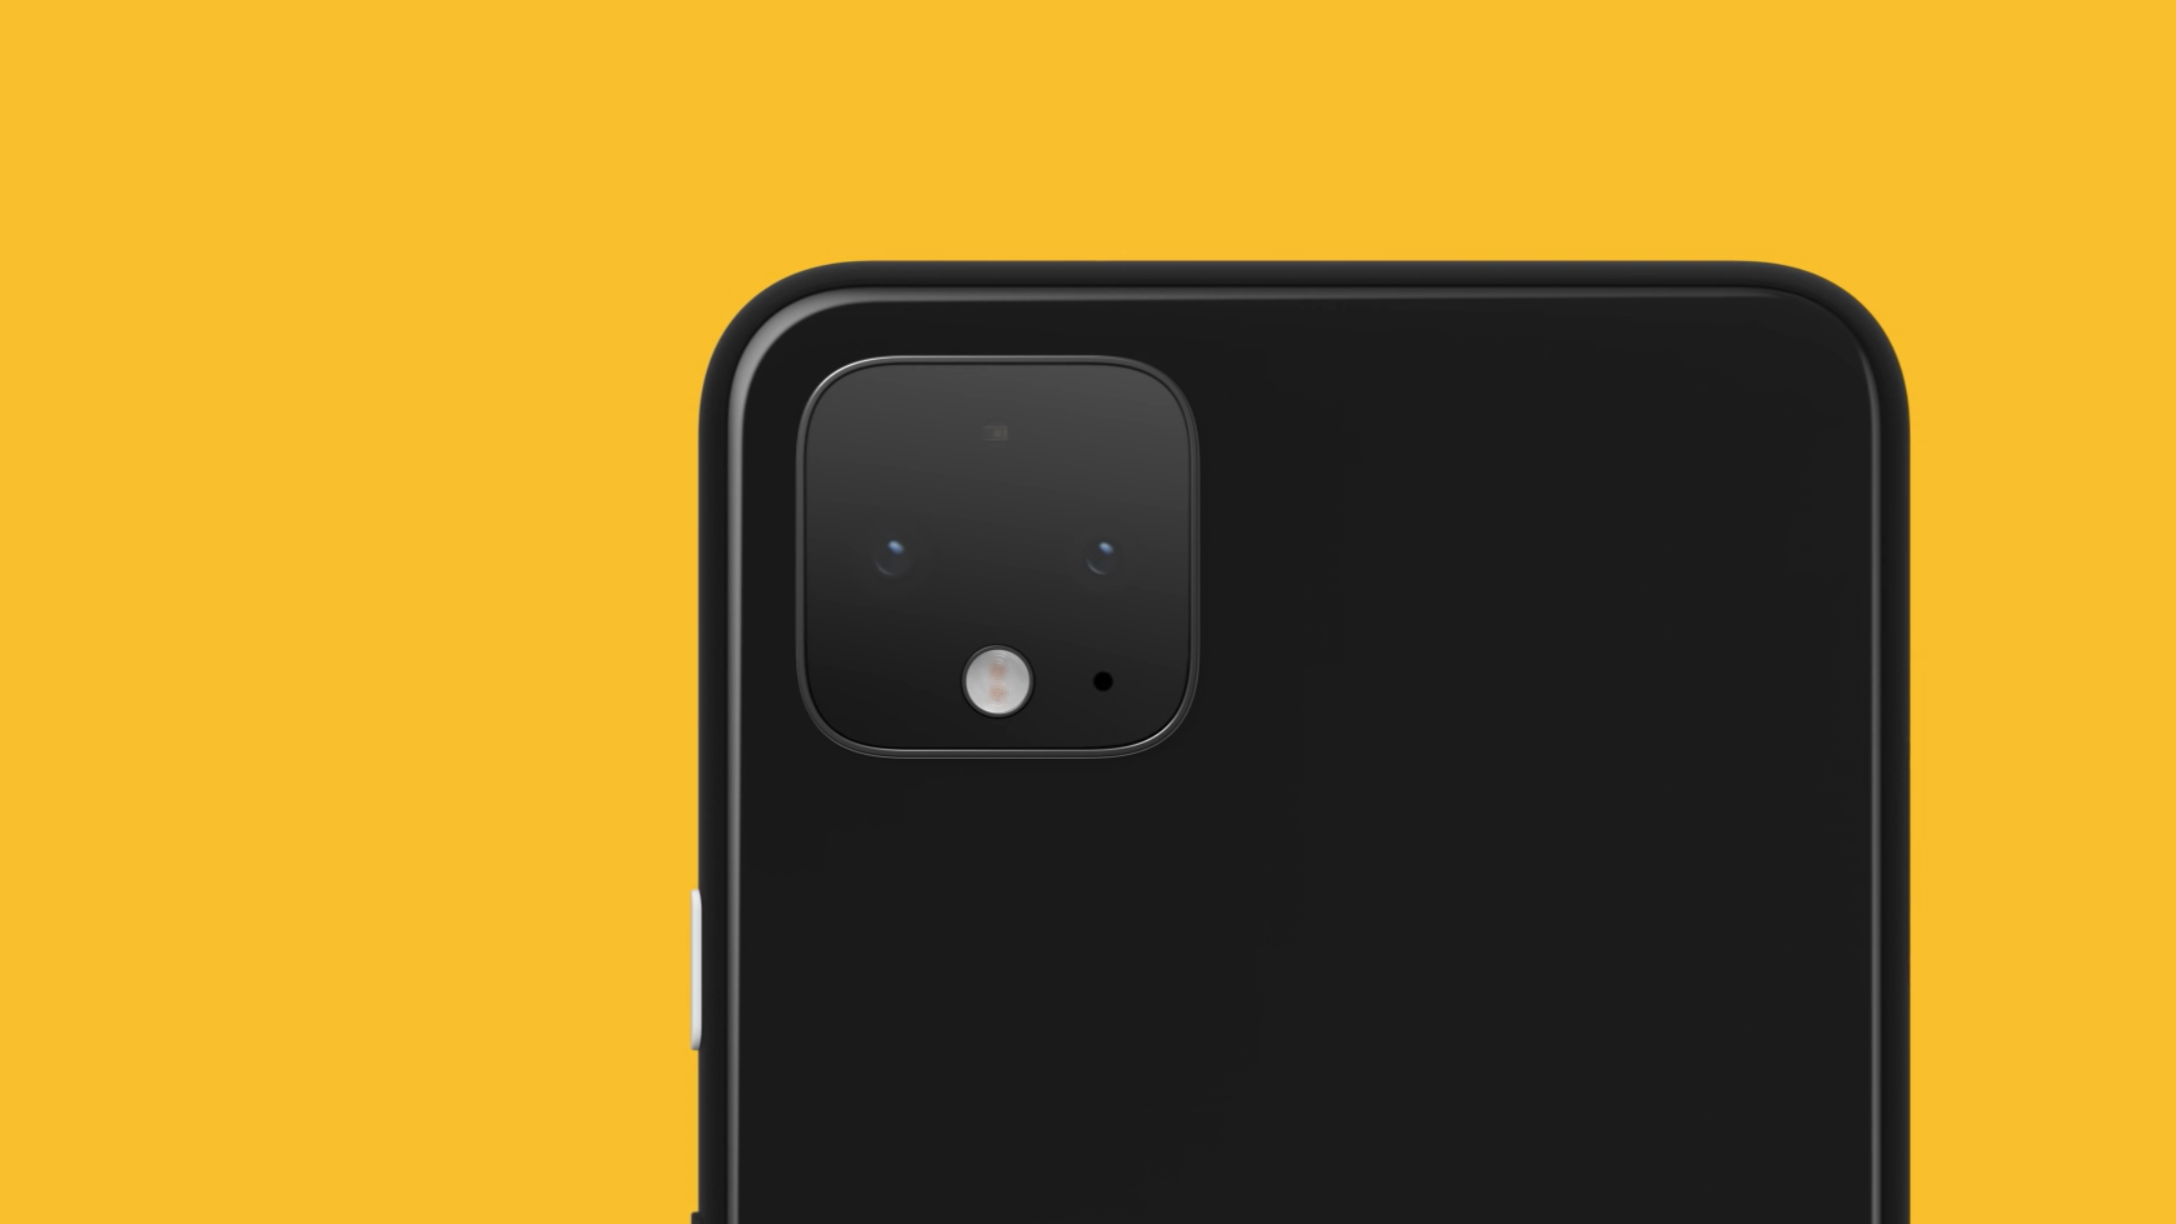 Pixel 4 will use 'Frequent Faces' to focus on people you often photograph